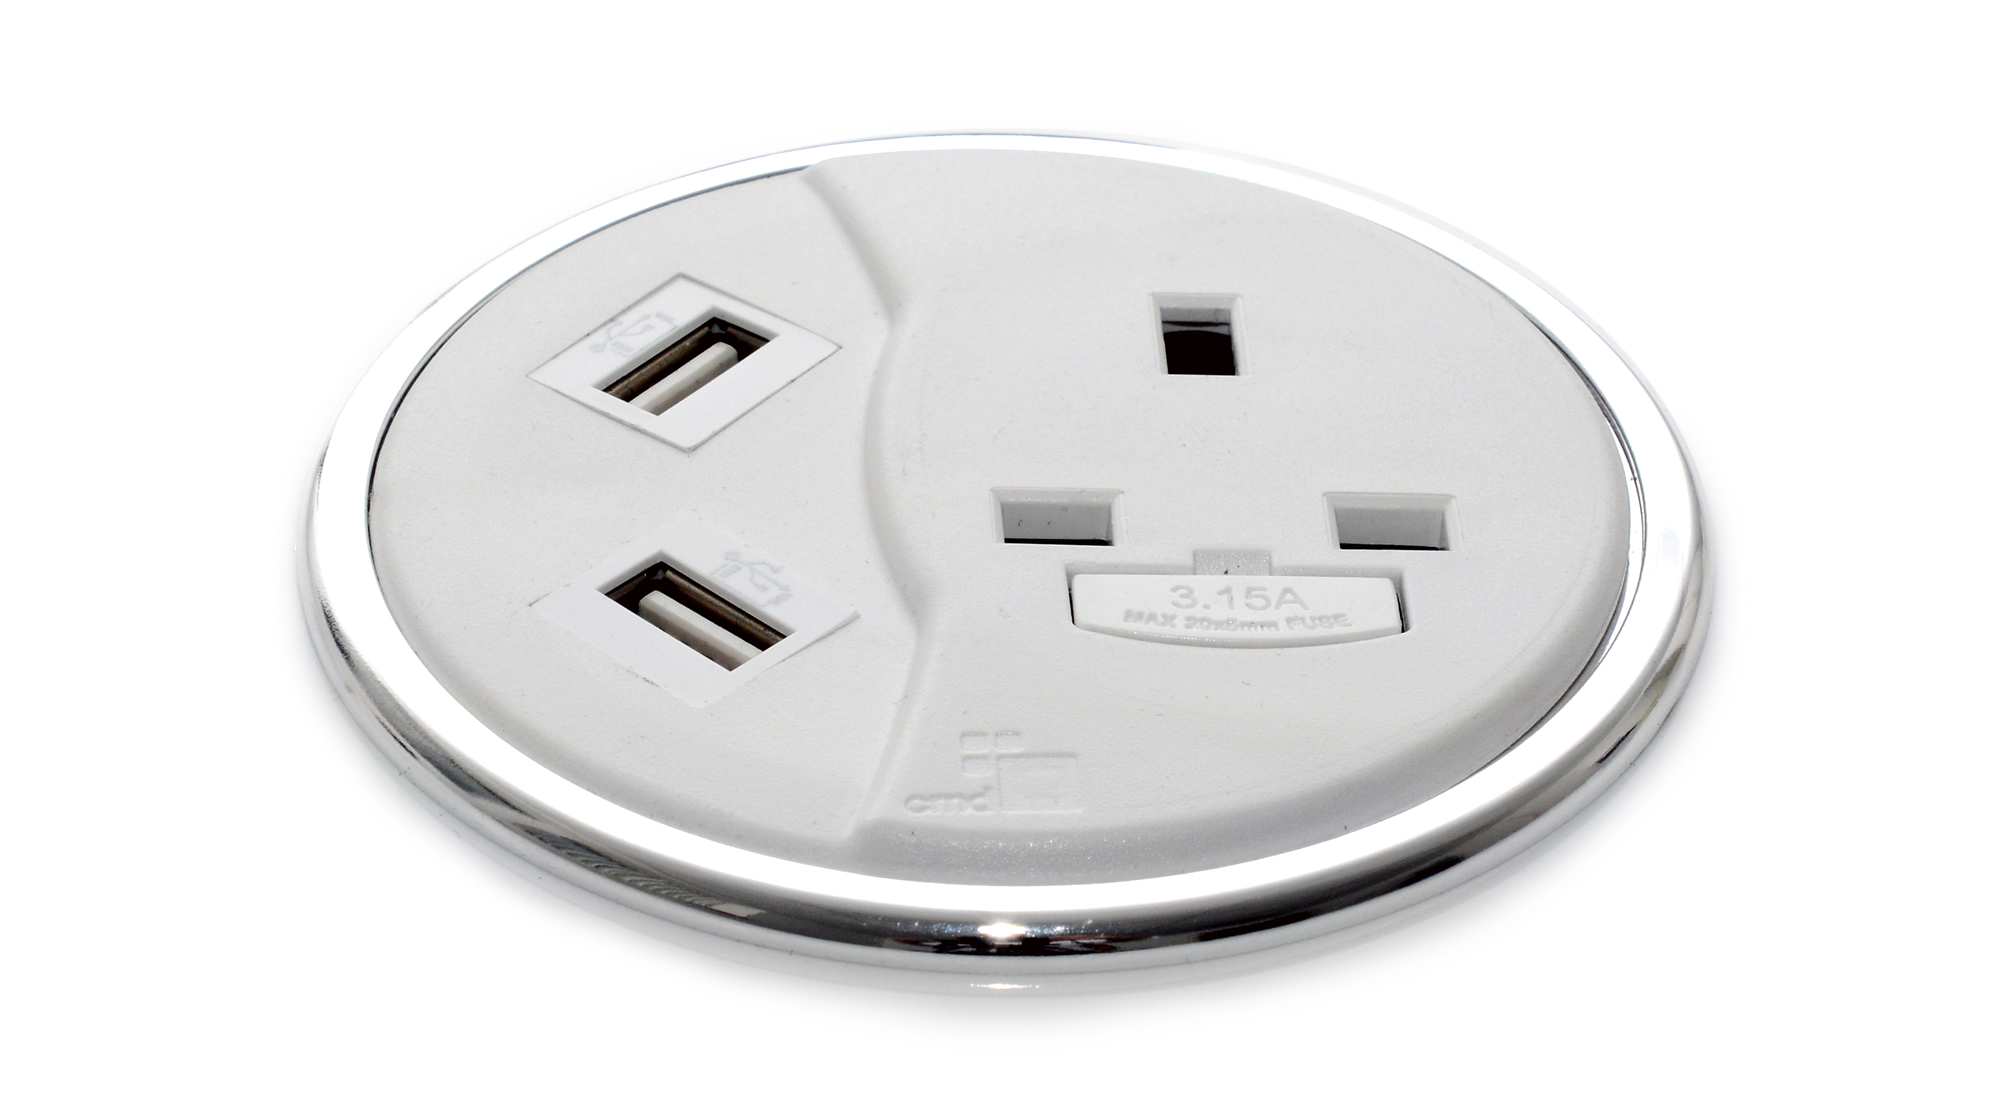 Porthole Power Usb Charging Data Amp Media Cmd Ltd